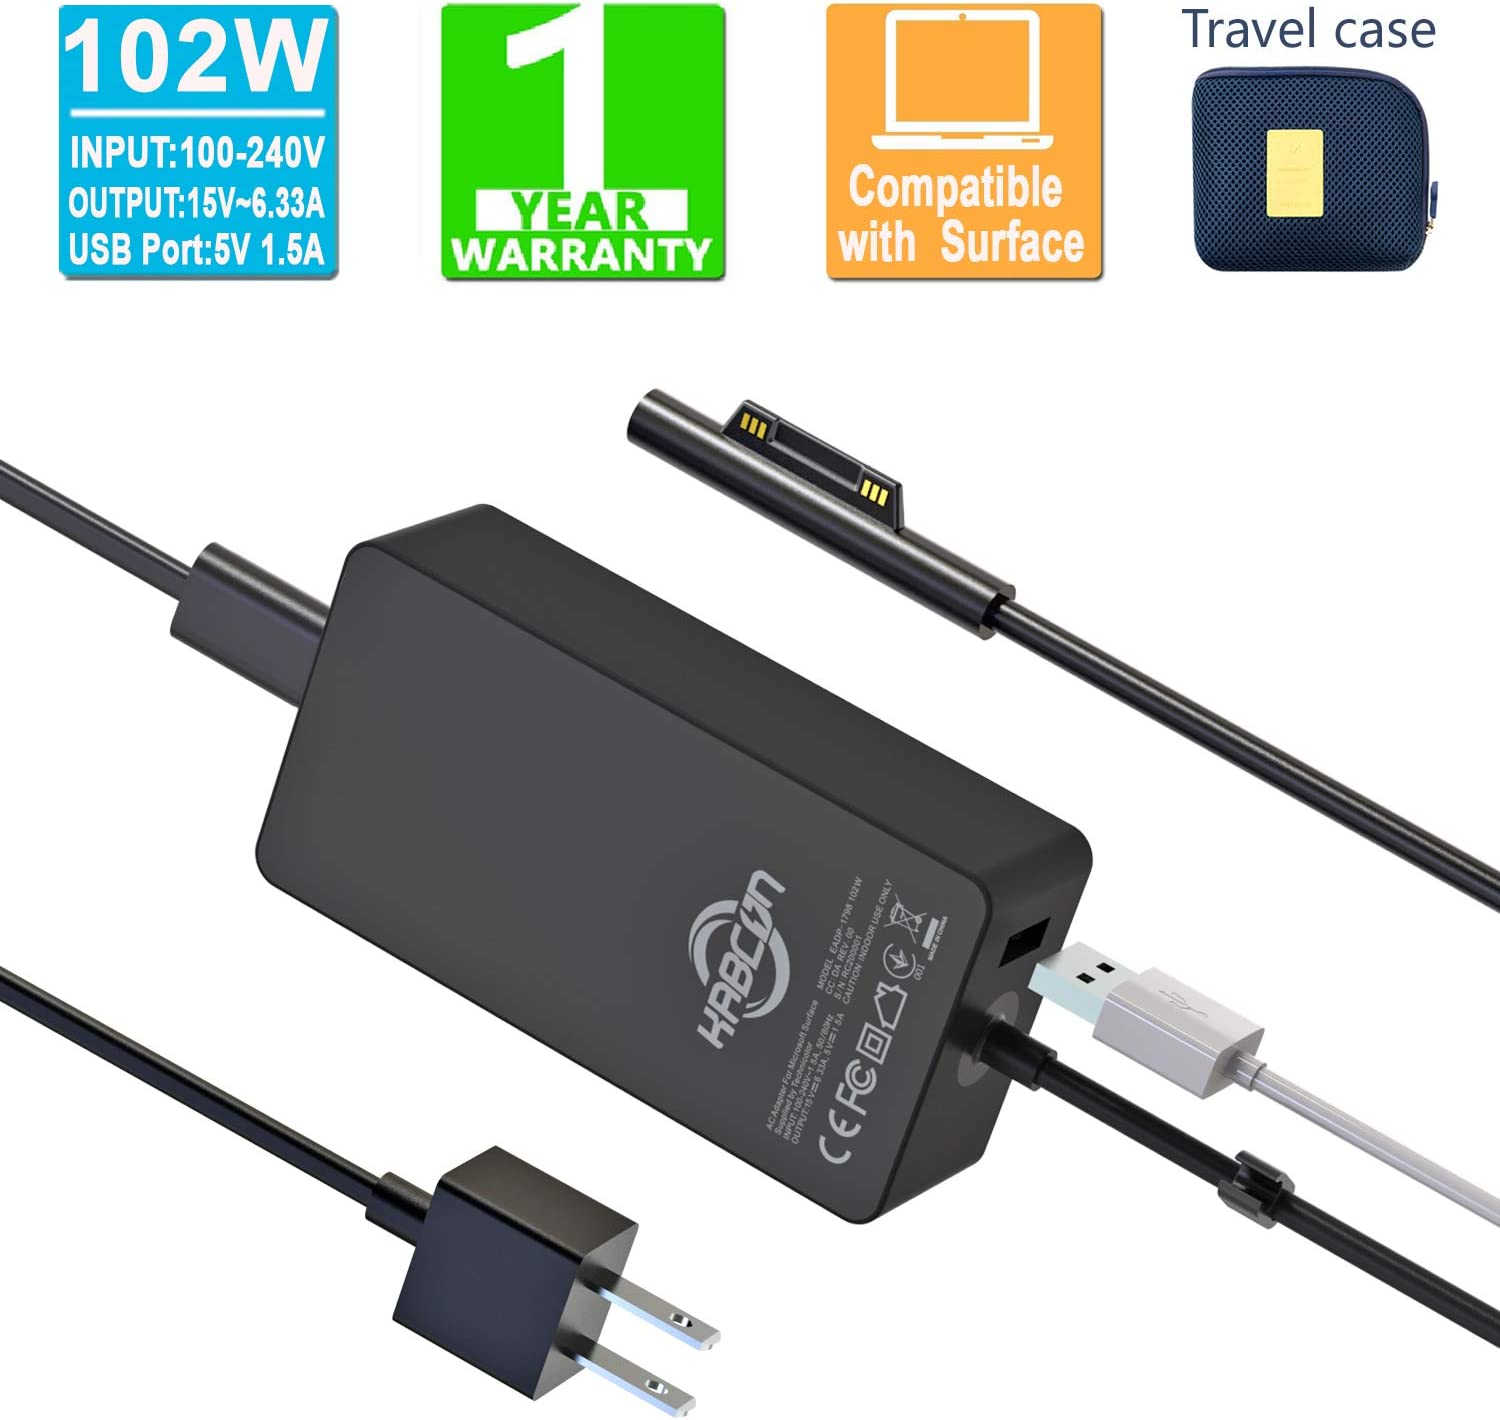 Surface Book 2 Charger,102W 15V 6.33A Power Supply Adapter for Microsoft Surface Book 2,Surface Book,Surface Pro 6,Surface Pro,Surface Pro 3 Pro 4,Surface Laptop Laptop 2 with 6Ft Cable &a Carry Pouch